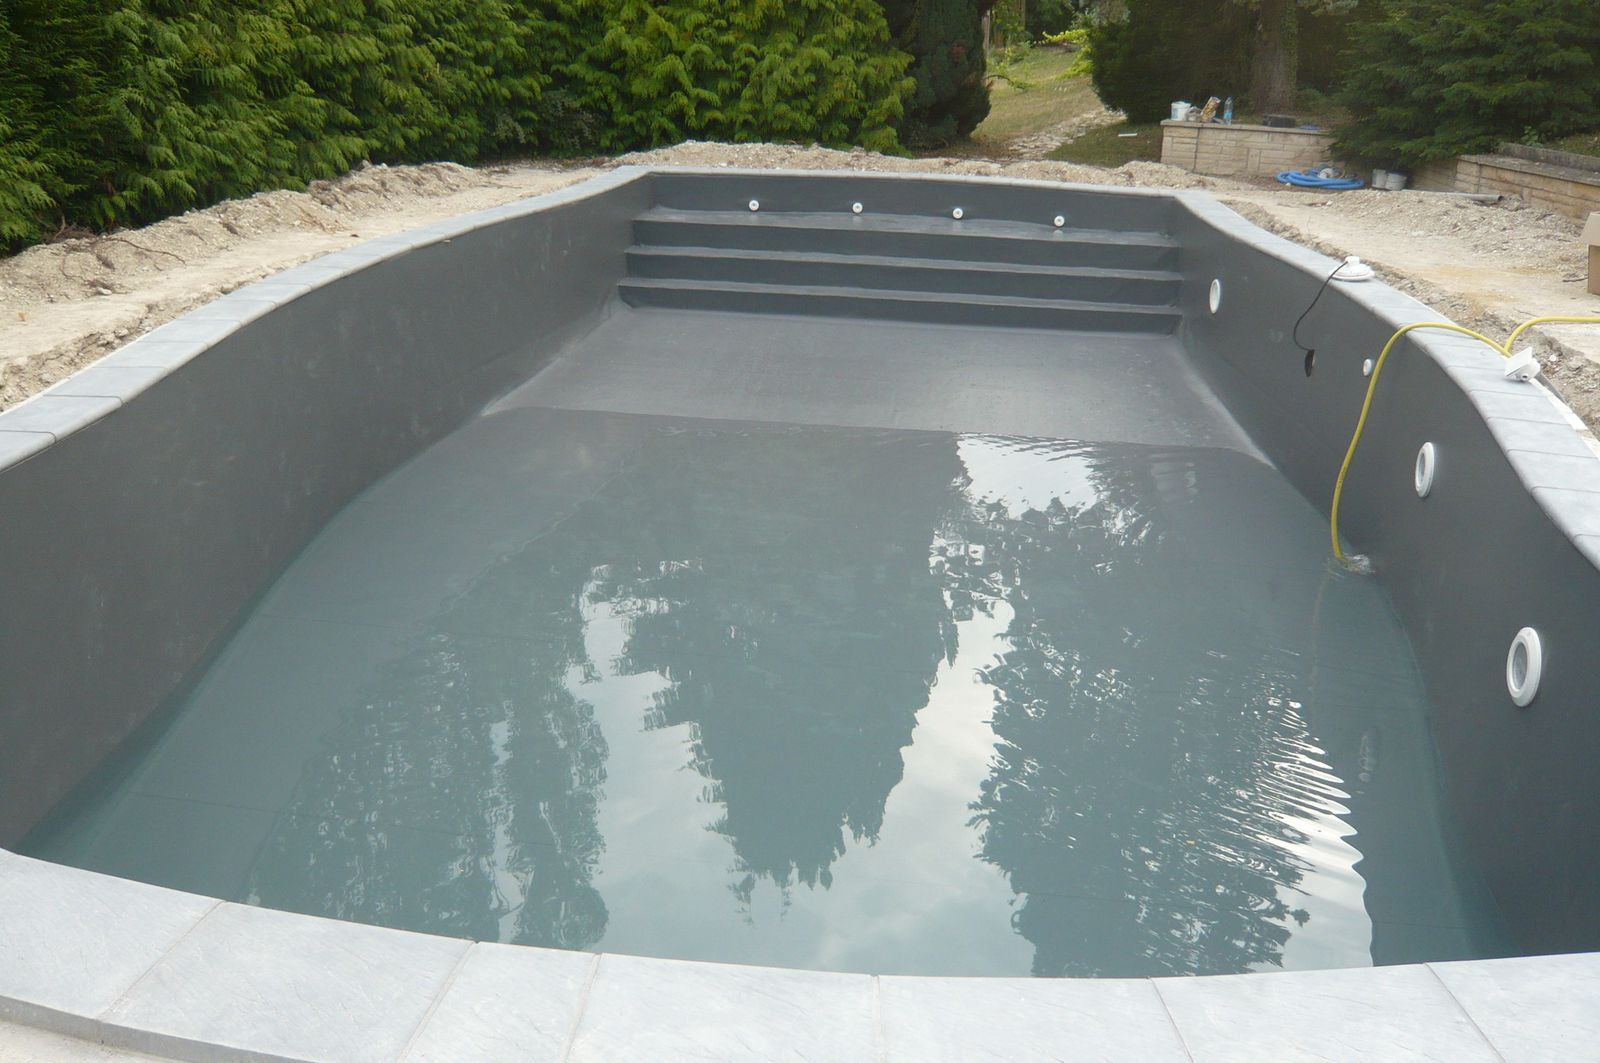 Album realisations piscines pvc arm liner piscine for Piscine en pvc arme